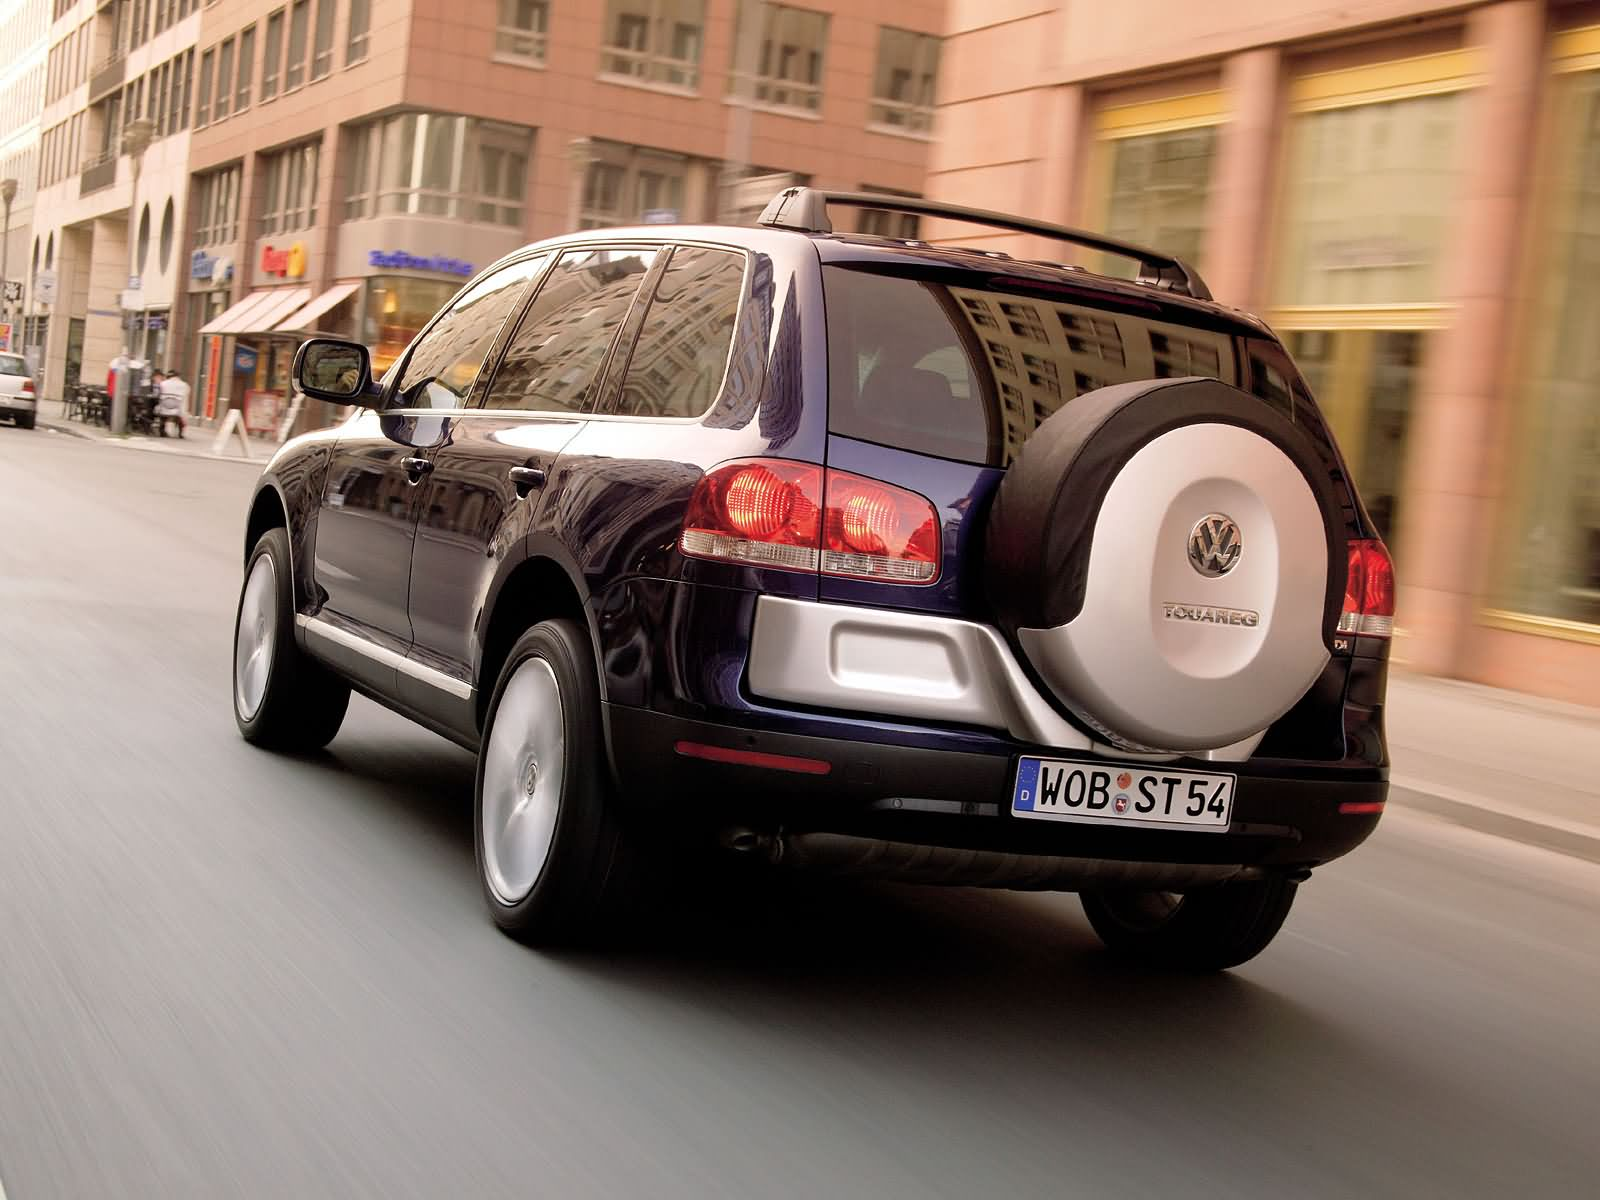 volkswagen touareg v6 tdi 2006 volkswagen touareg v6 tdi 2006 photo 04 car in pictures car. Black Bedroom Furniture Sets. Home Design Ideas